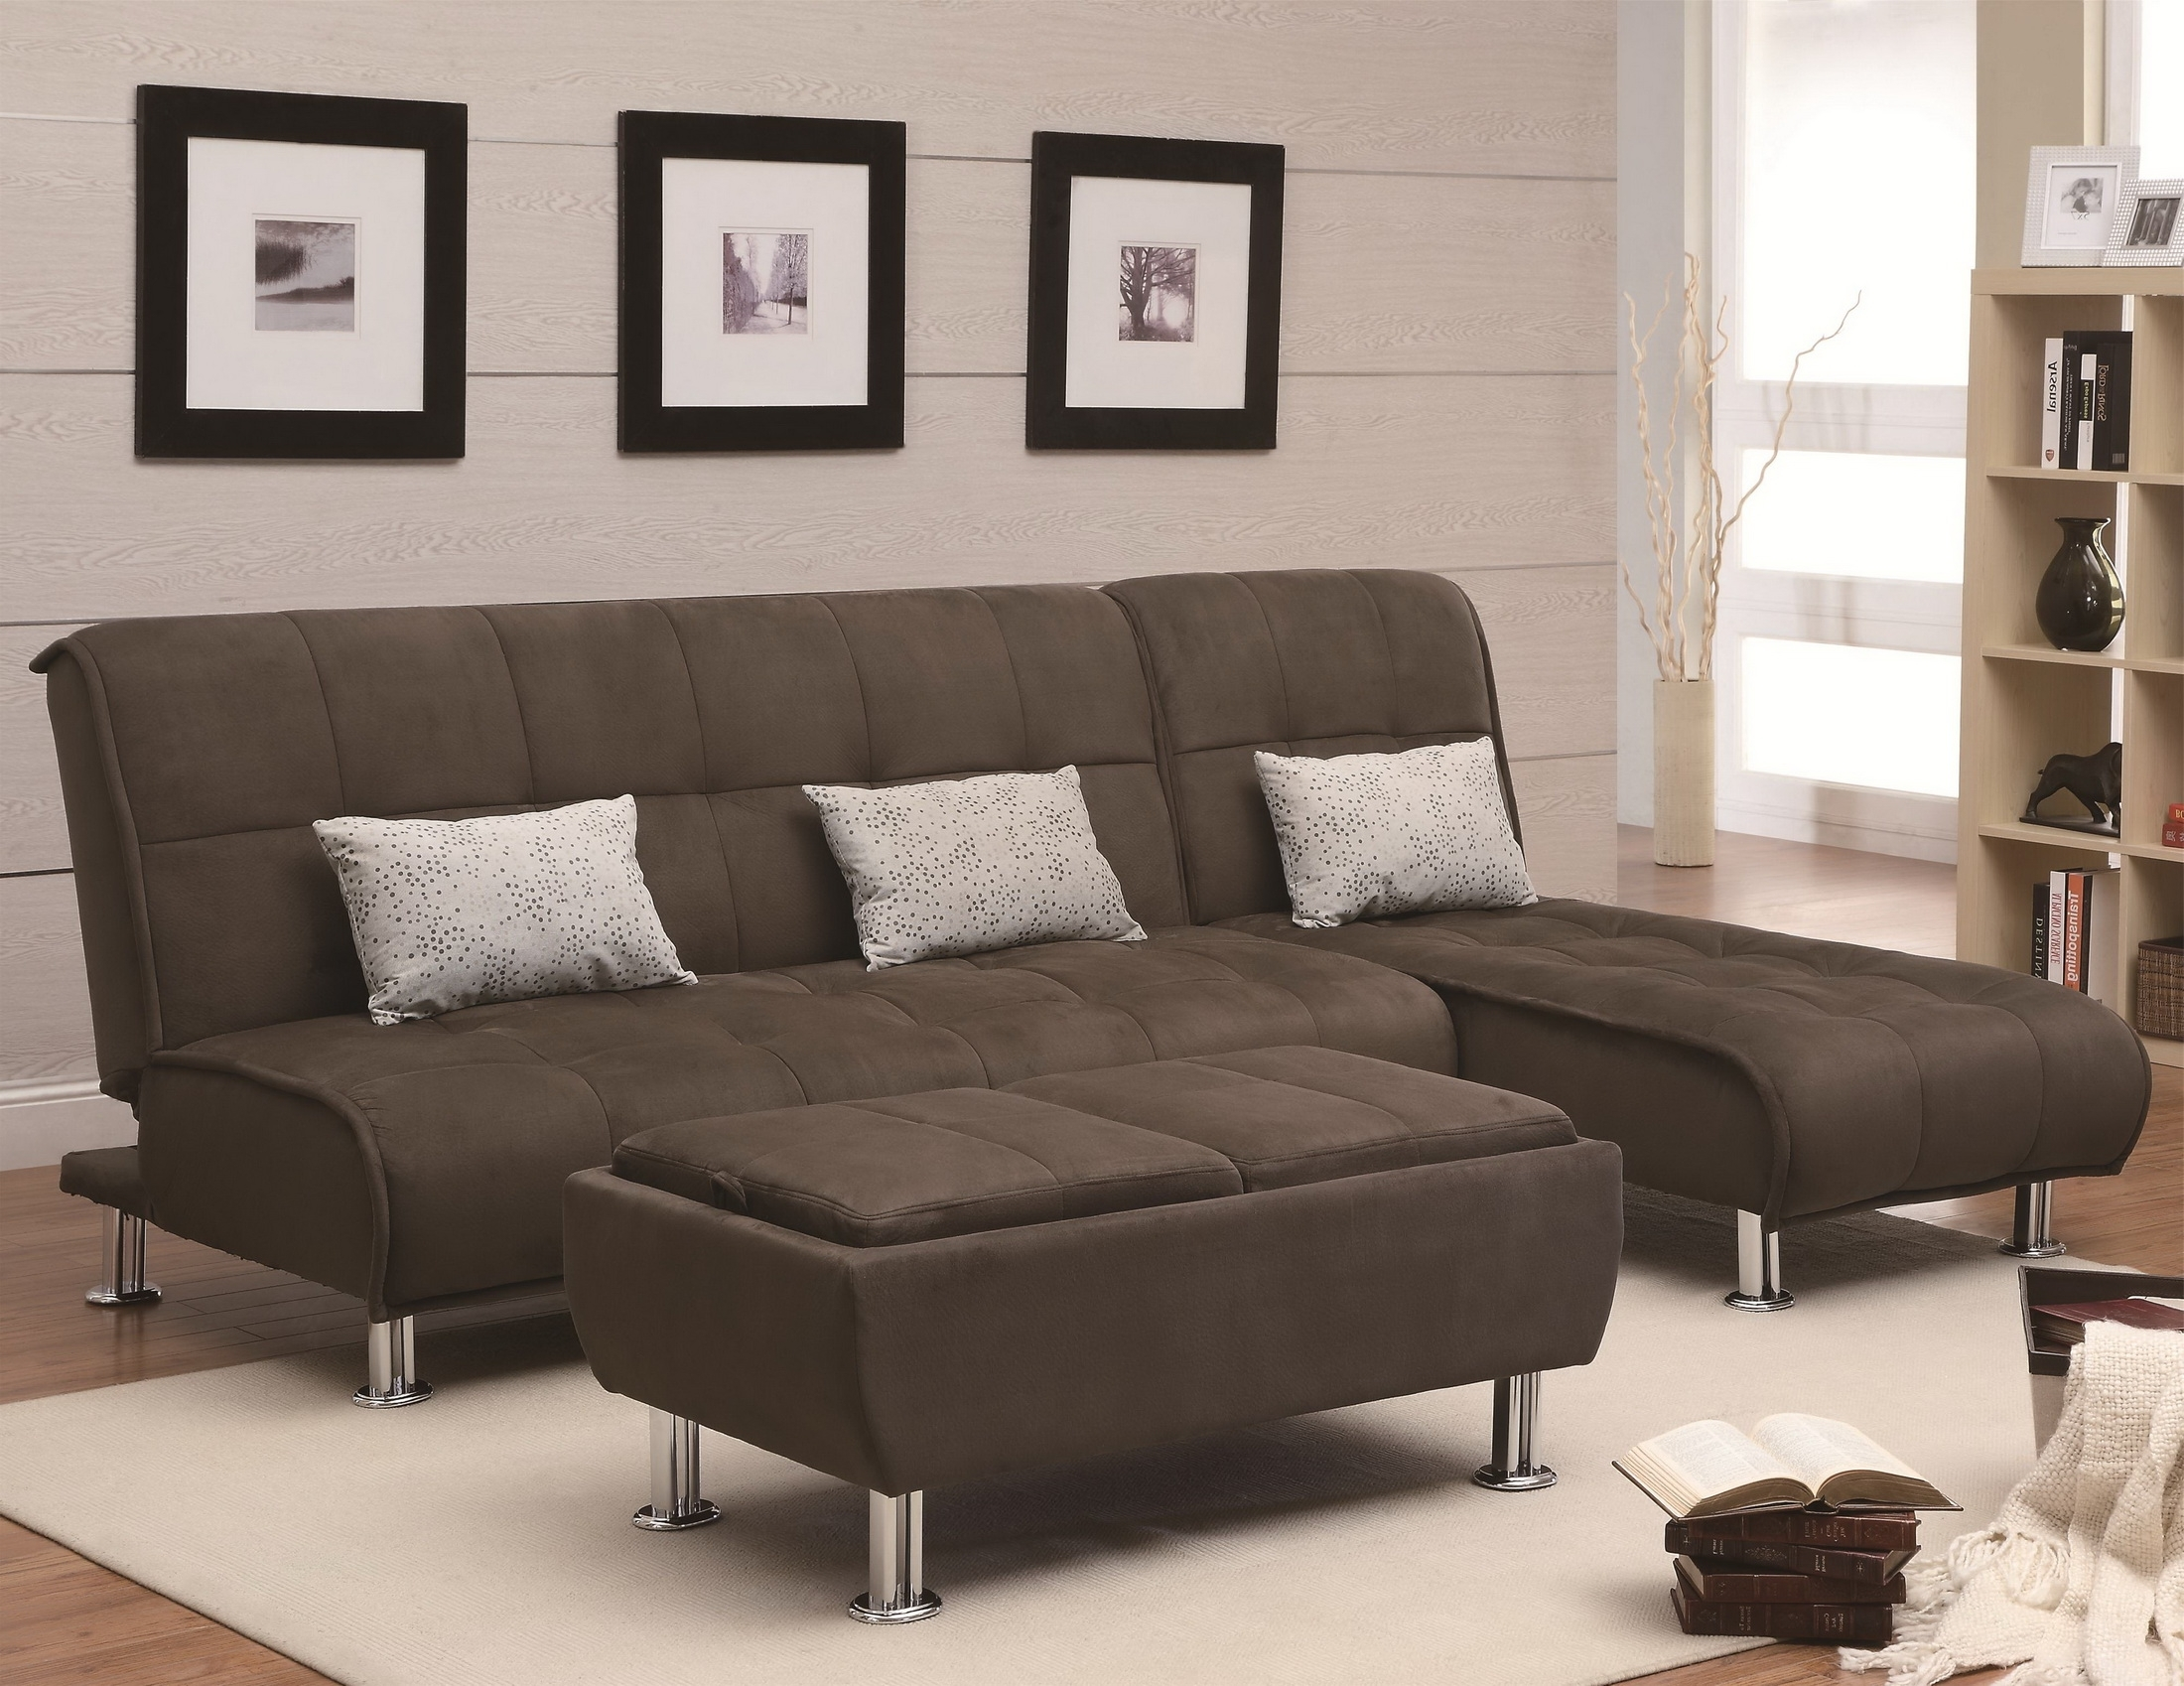 Current Brown Velvet Sectional Sofa With High Back And Grey Cushions Plus Intended For Sectional Sofas With High Backs (View 7 of 15)